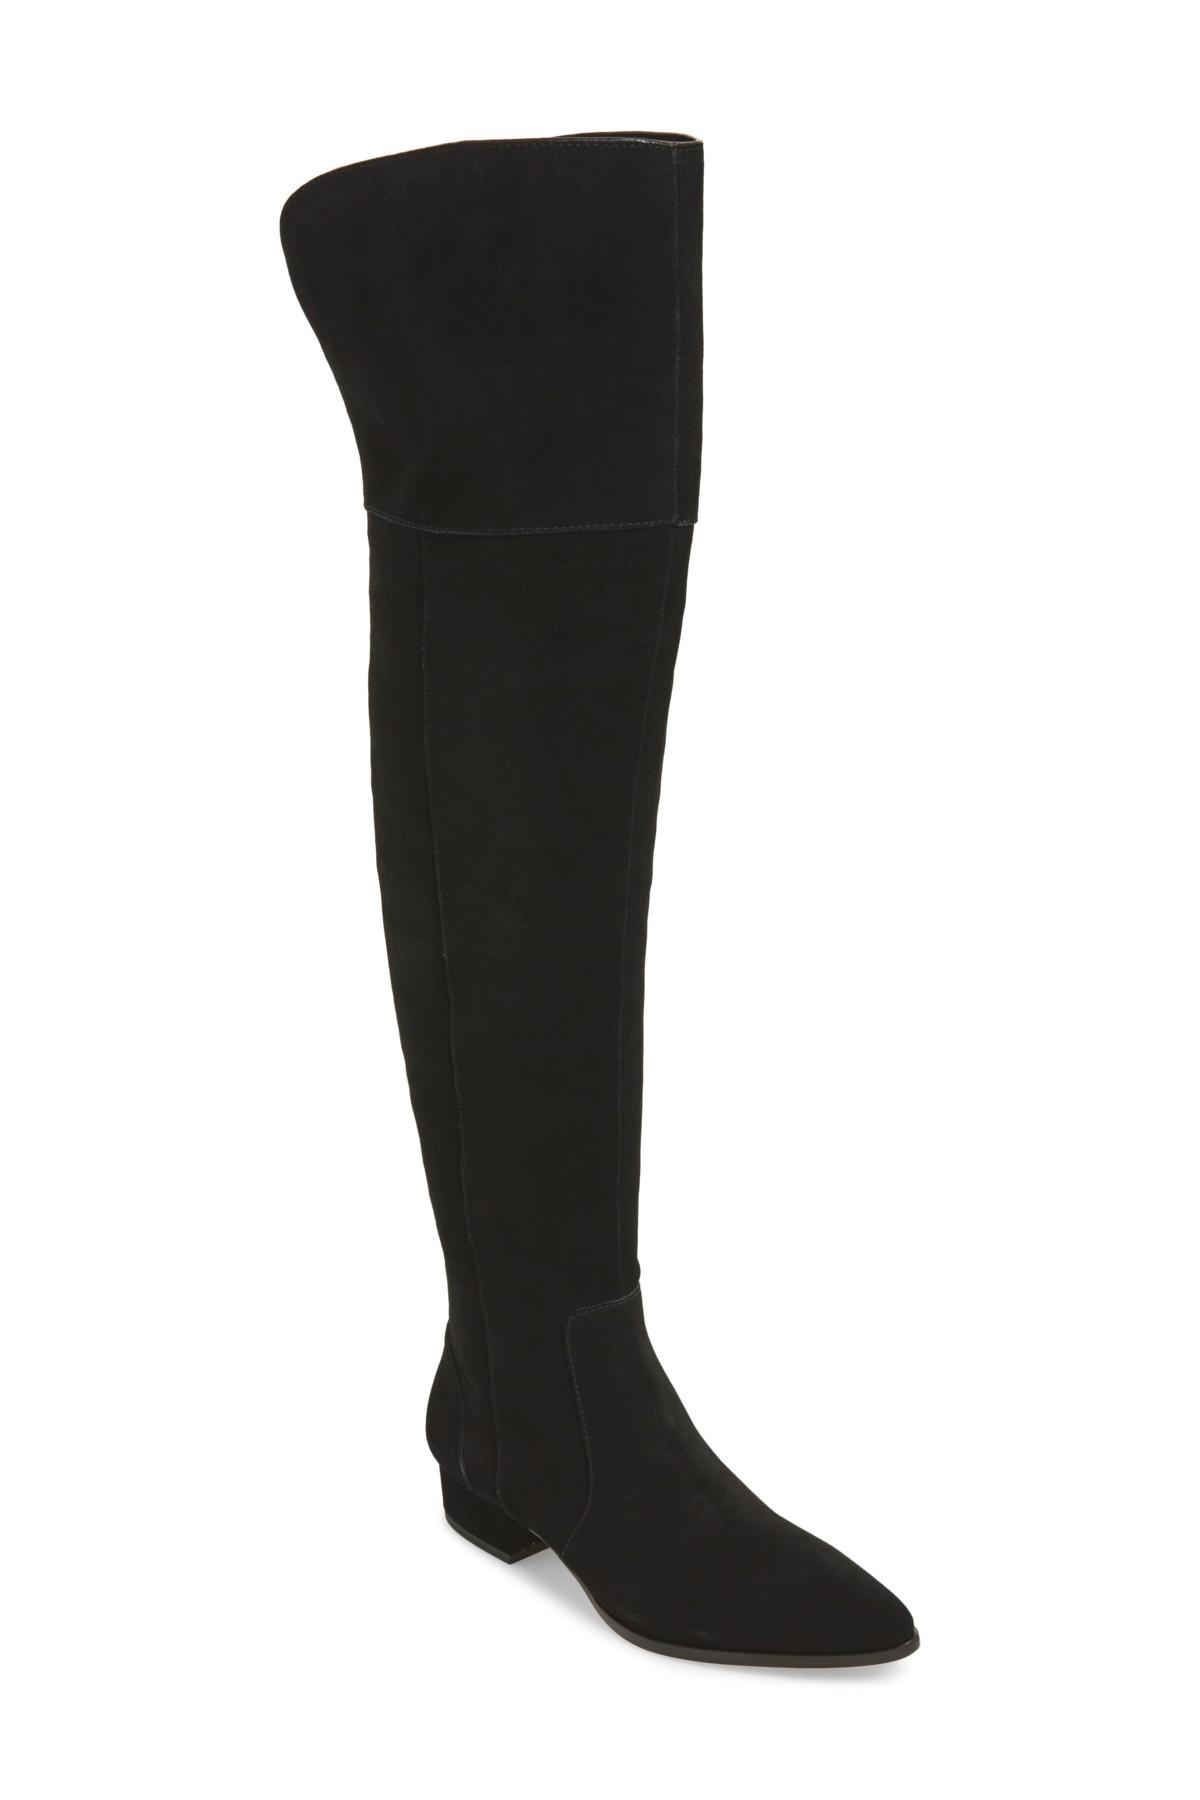 Splendid Women's Nick Knee High Boot z7YZA